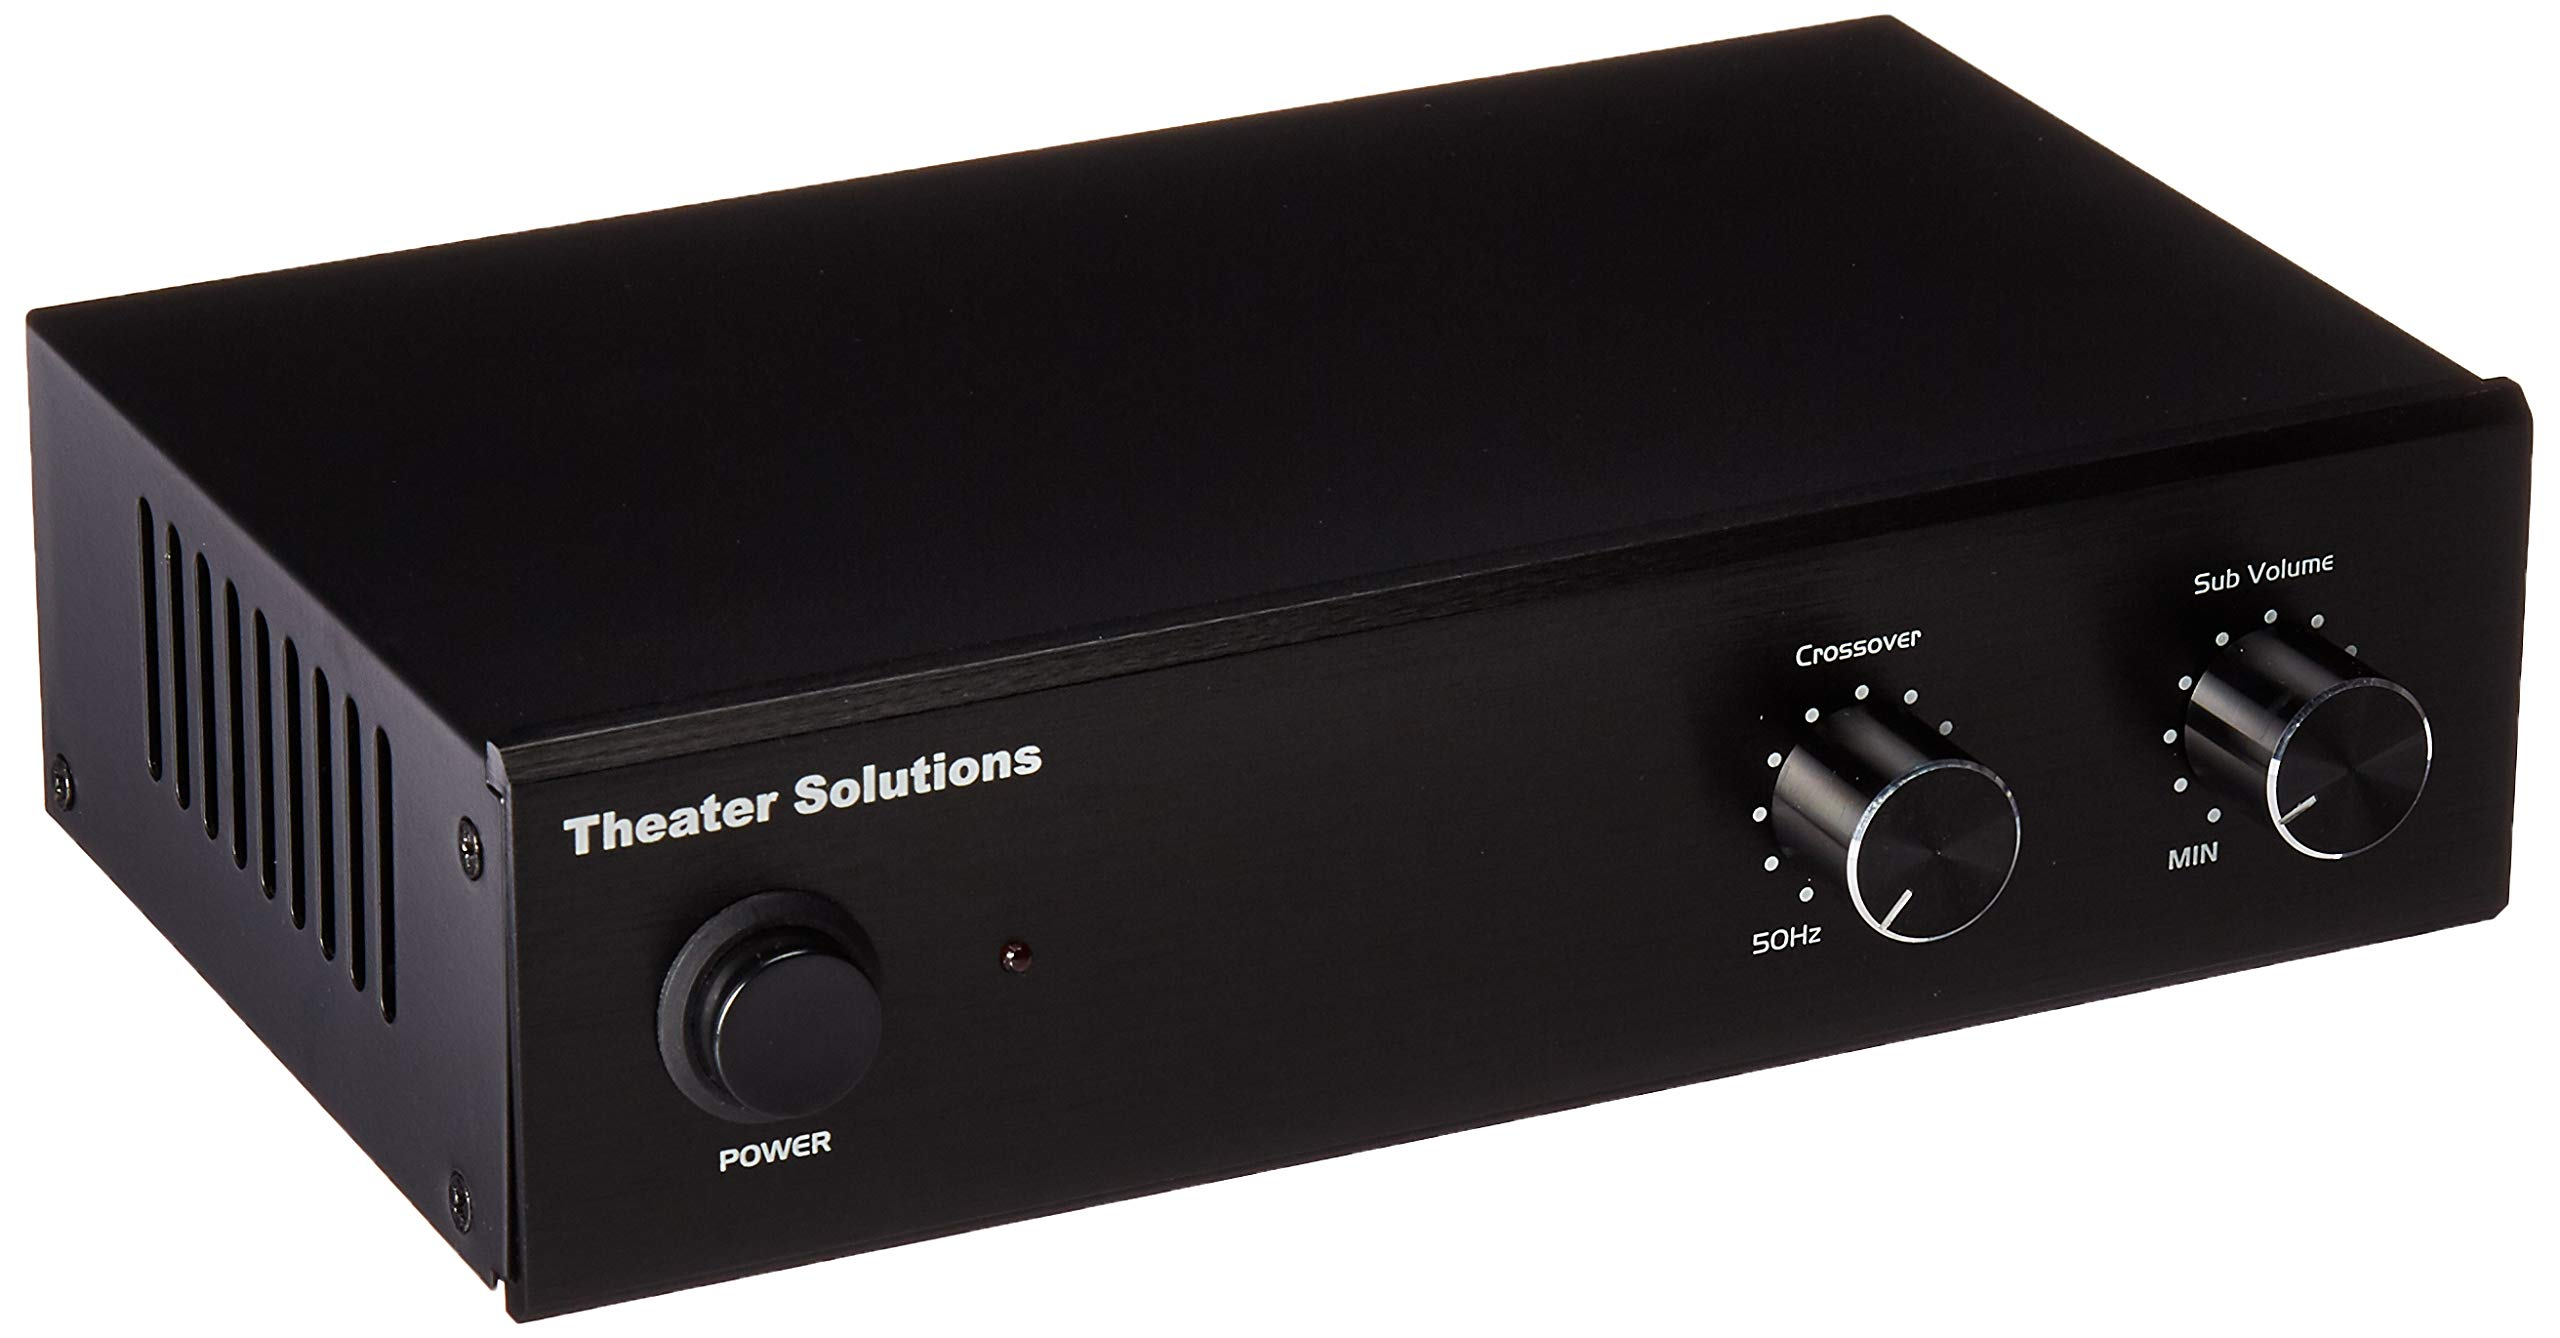 Theater Solutions SA200 Passive Subwoofer 200 Watt Amplifier for Home Theater by Theater Solutions